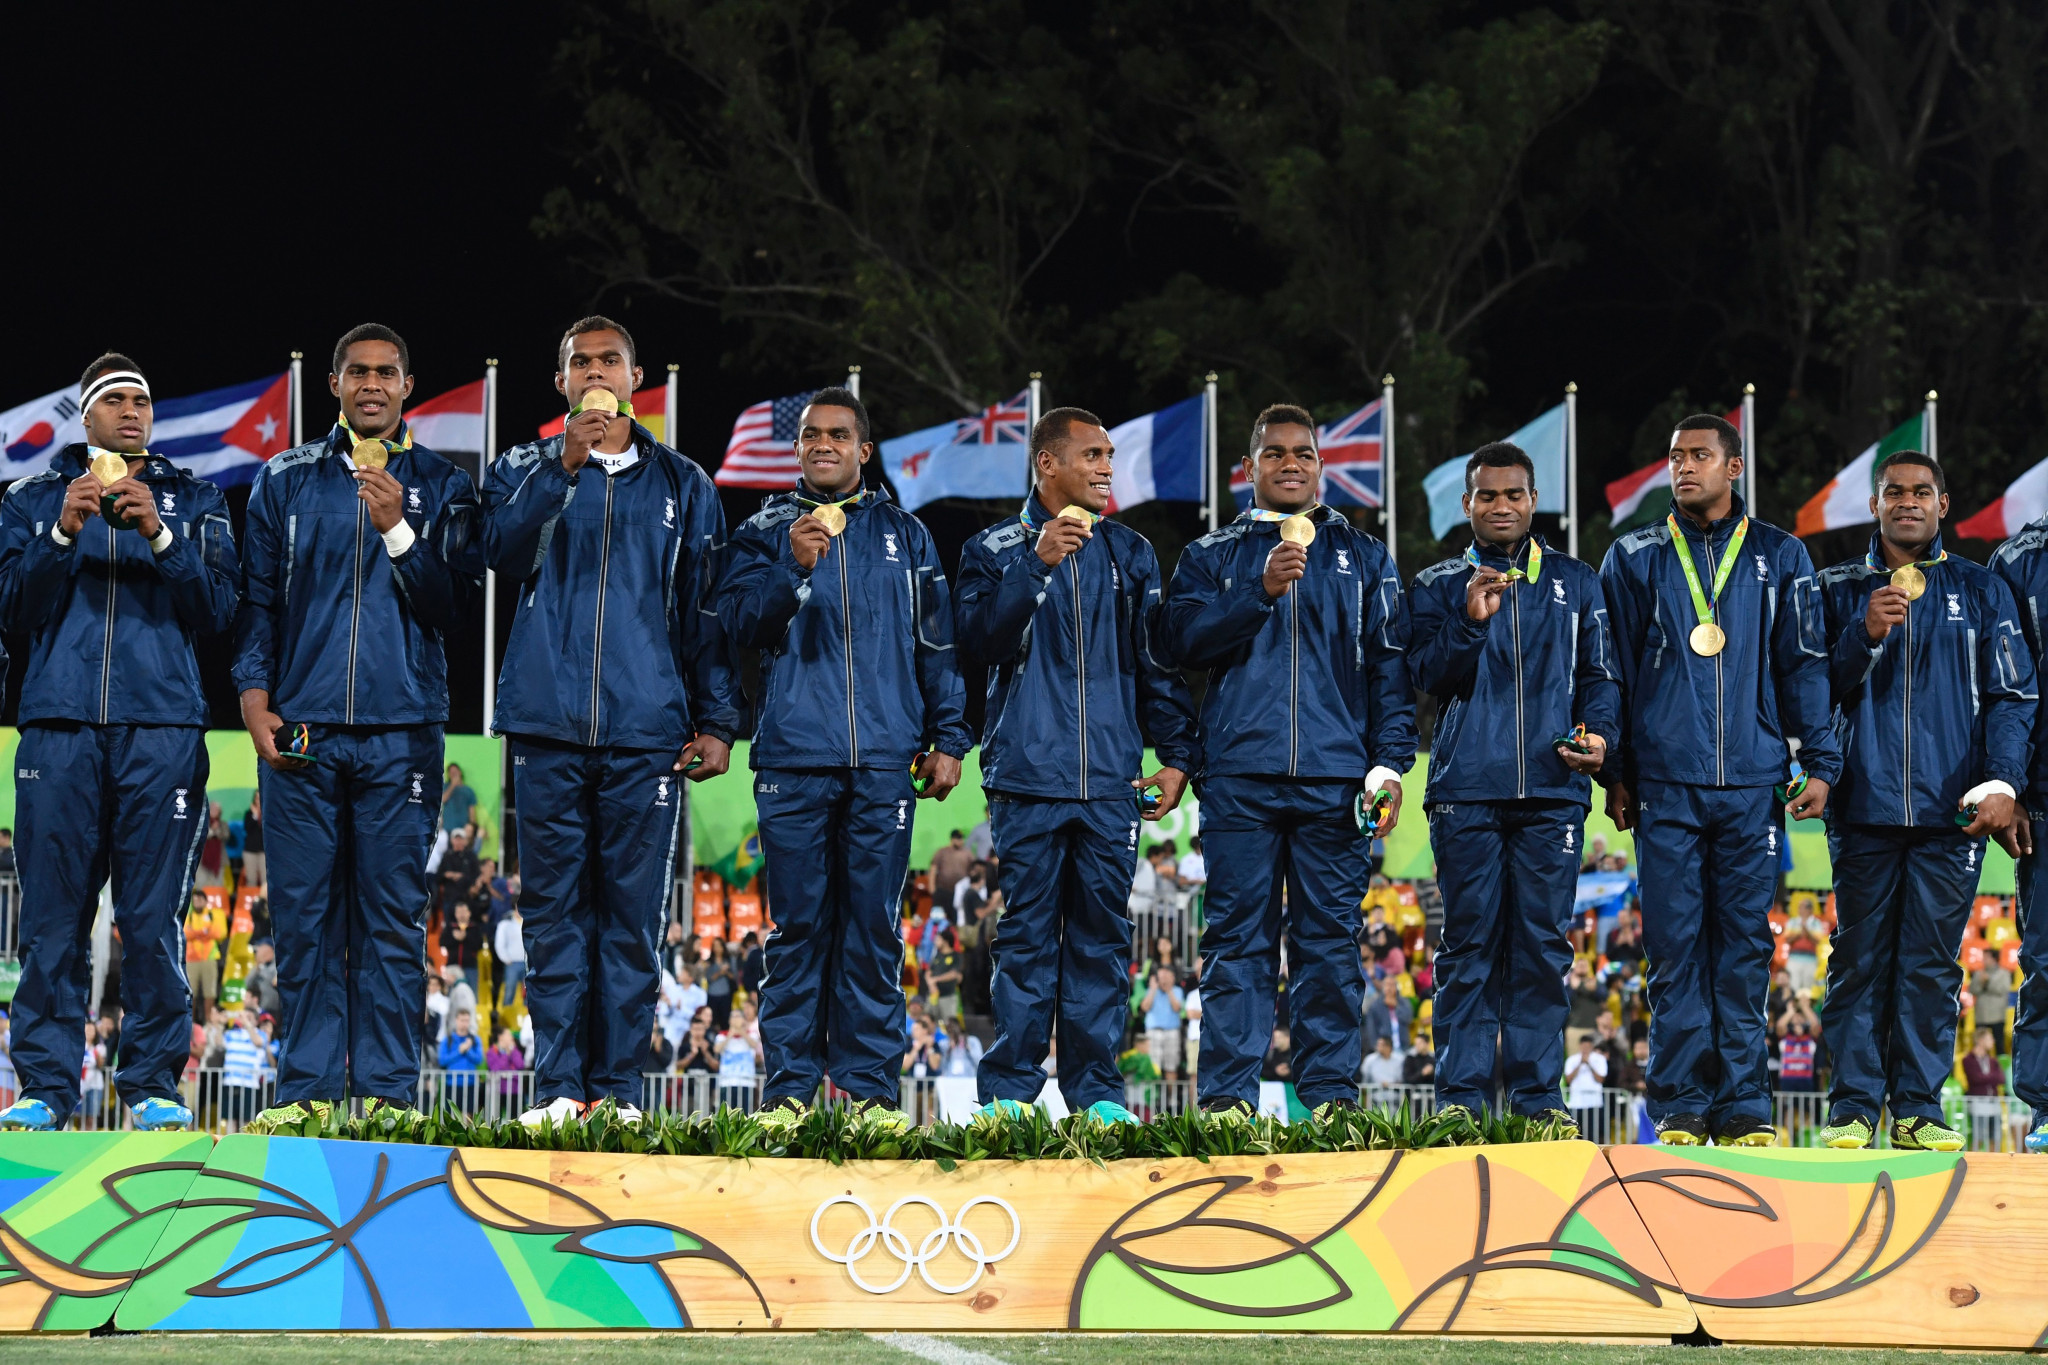 The men's rugby sevens team earned Fiji's first-ever Olympic gold medal at Rio 2016 ©Getty Images